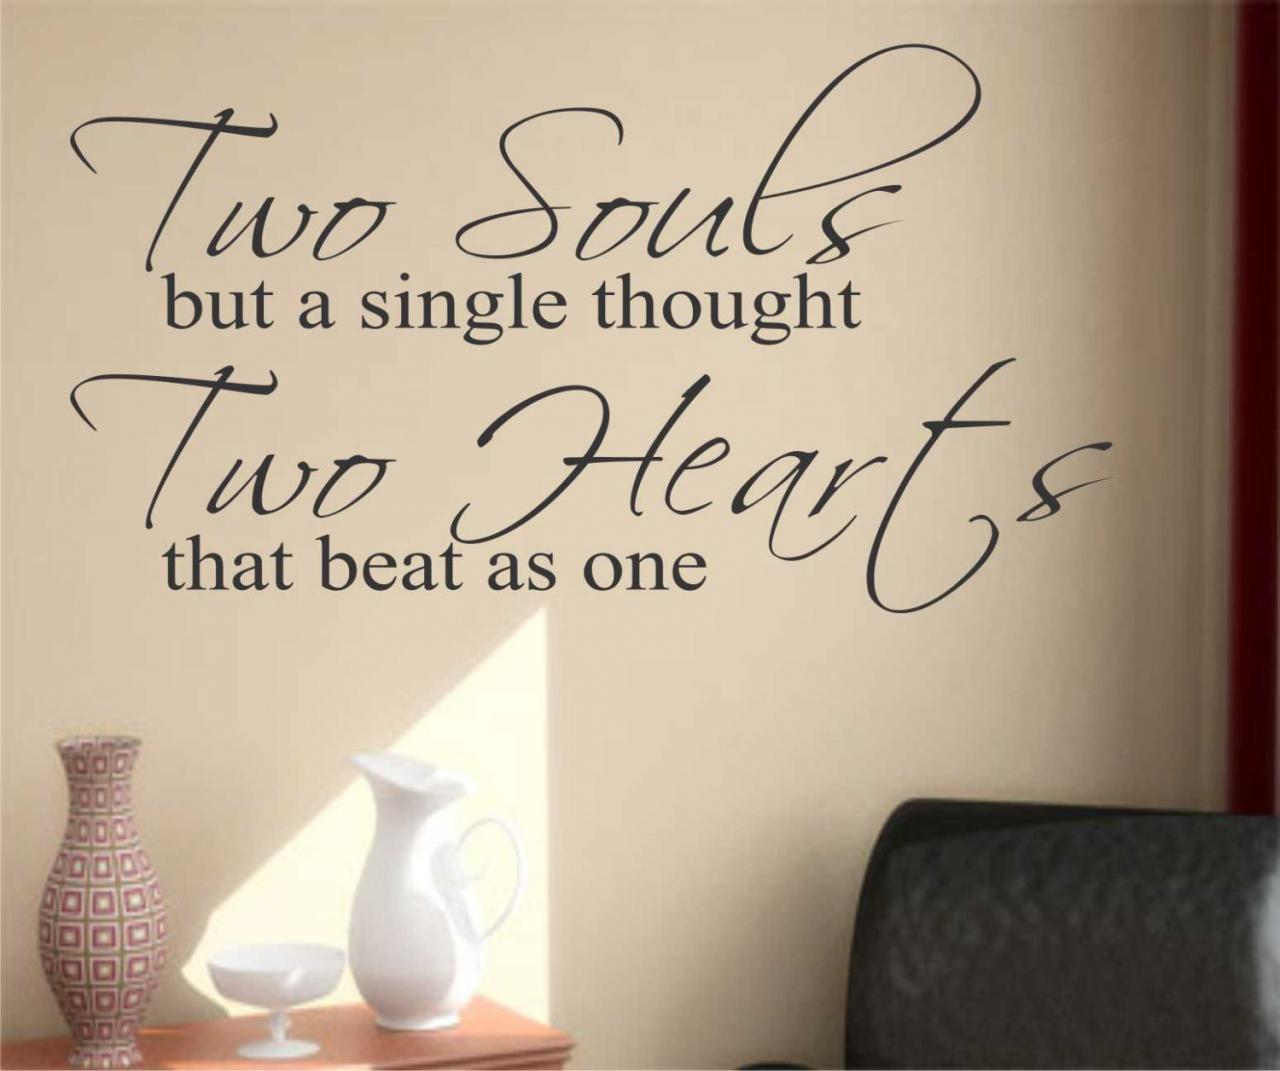 Two Souls Wedding Quotes Love But Single Thought Hearts Beat One Couple Words Meaningful Together New